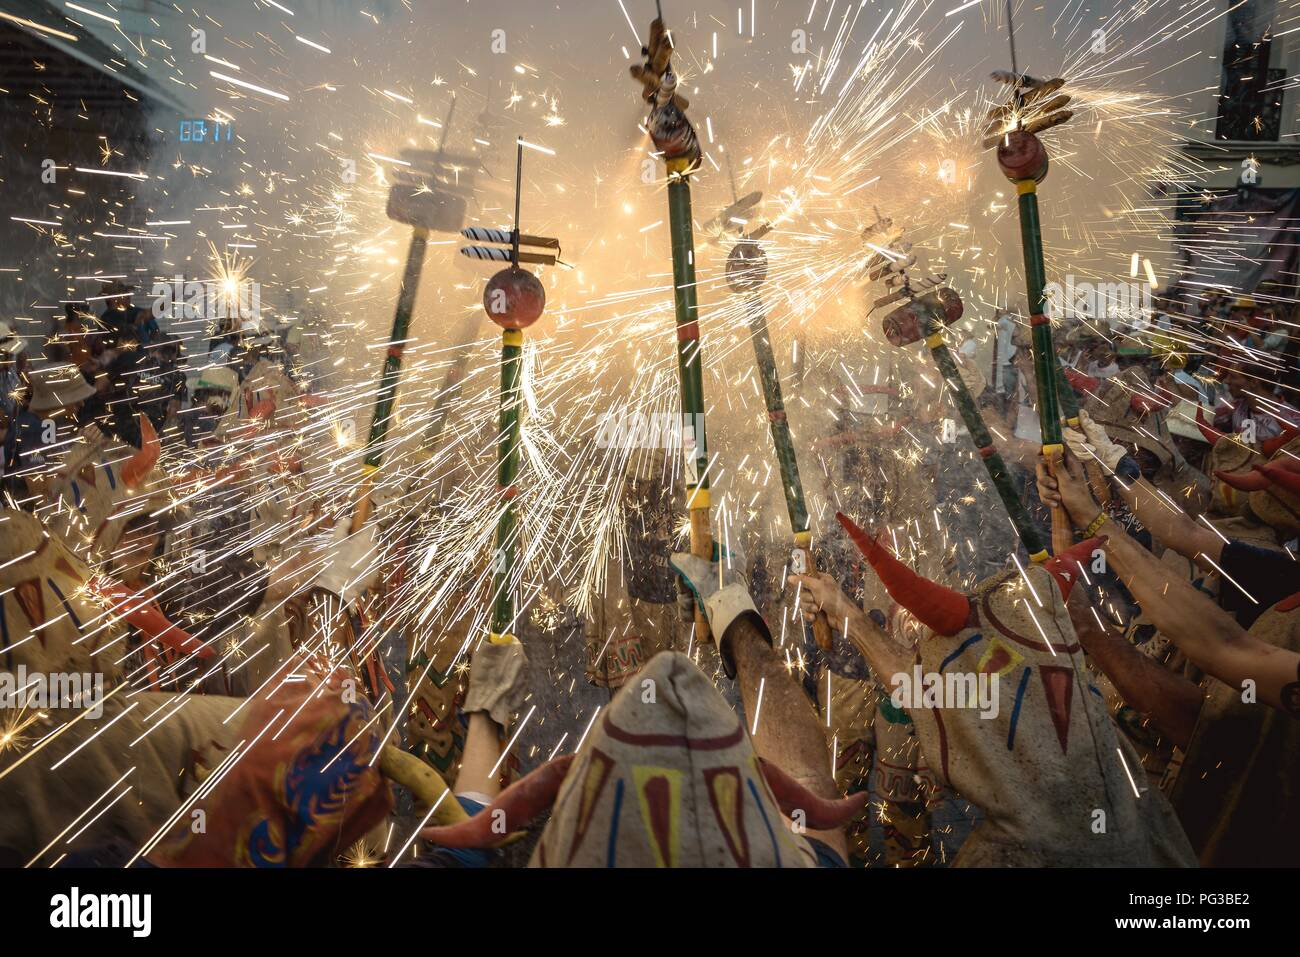 Sitges, Spain. 24 August, 2018:  Members of 'Diables de Sitges - Colla Vella' enlighten their fireworks among the crowd of spectators at the 'Festa Major de Sitges'. Credit: Matthias Oesterle/Alamy Live News - Stock Image